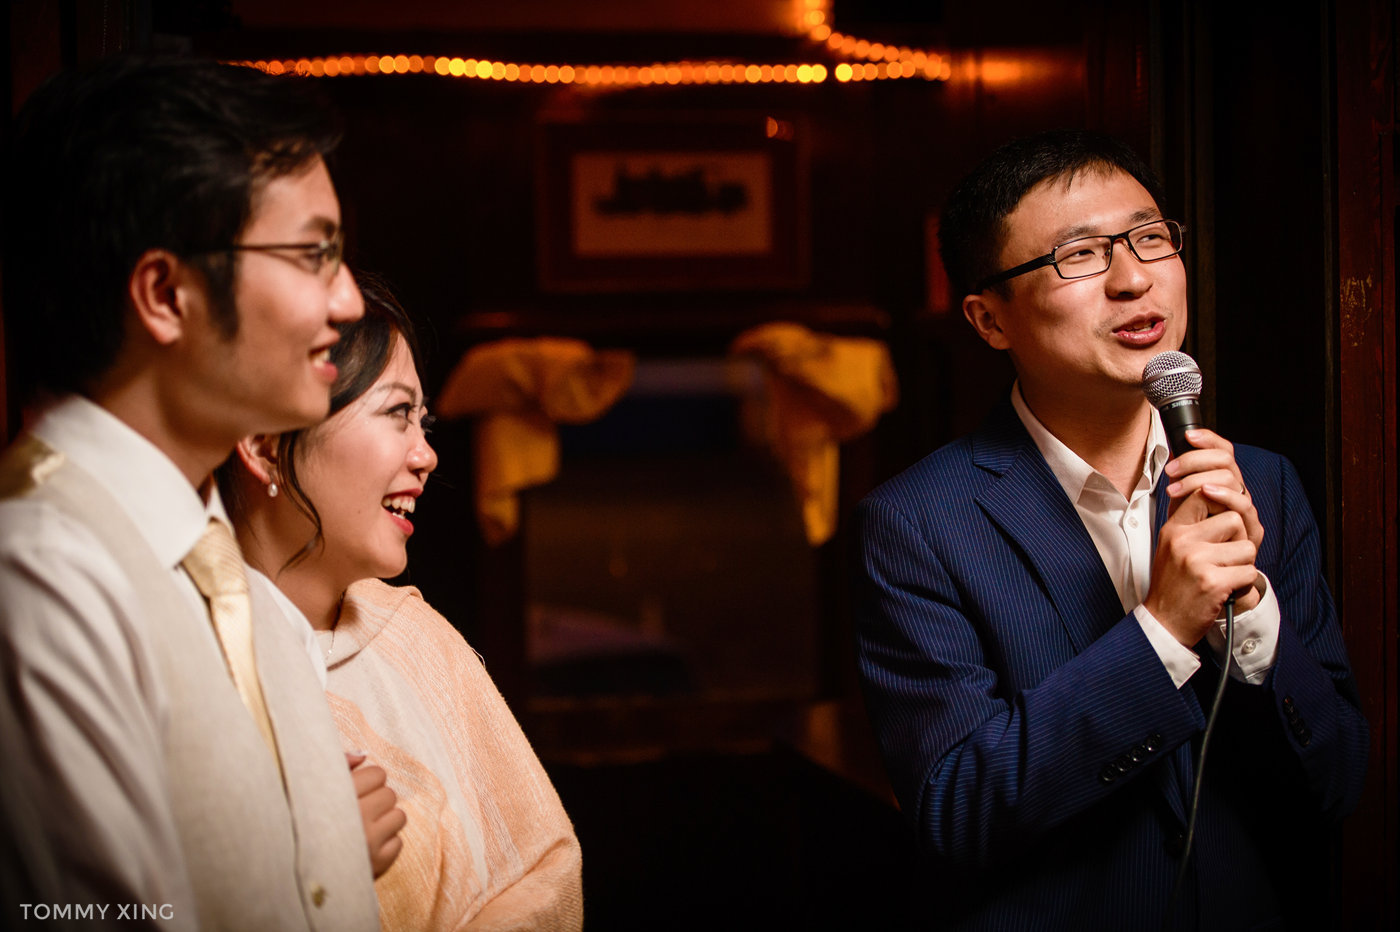 Seattle Wedding and pre wedding Los Angeles Tommy Xing Photography 西雅图洛杉矶旧金山婚礼婚纱照摄影师 228.jpg